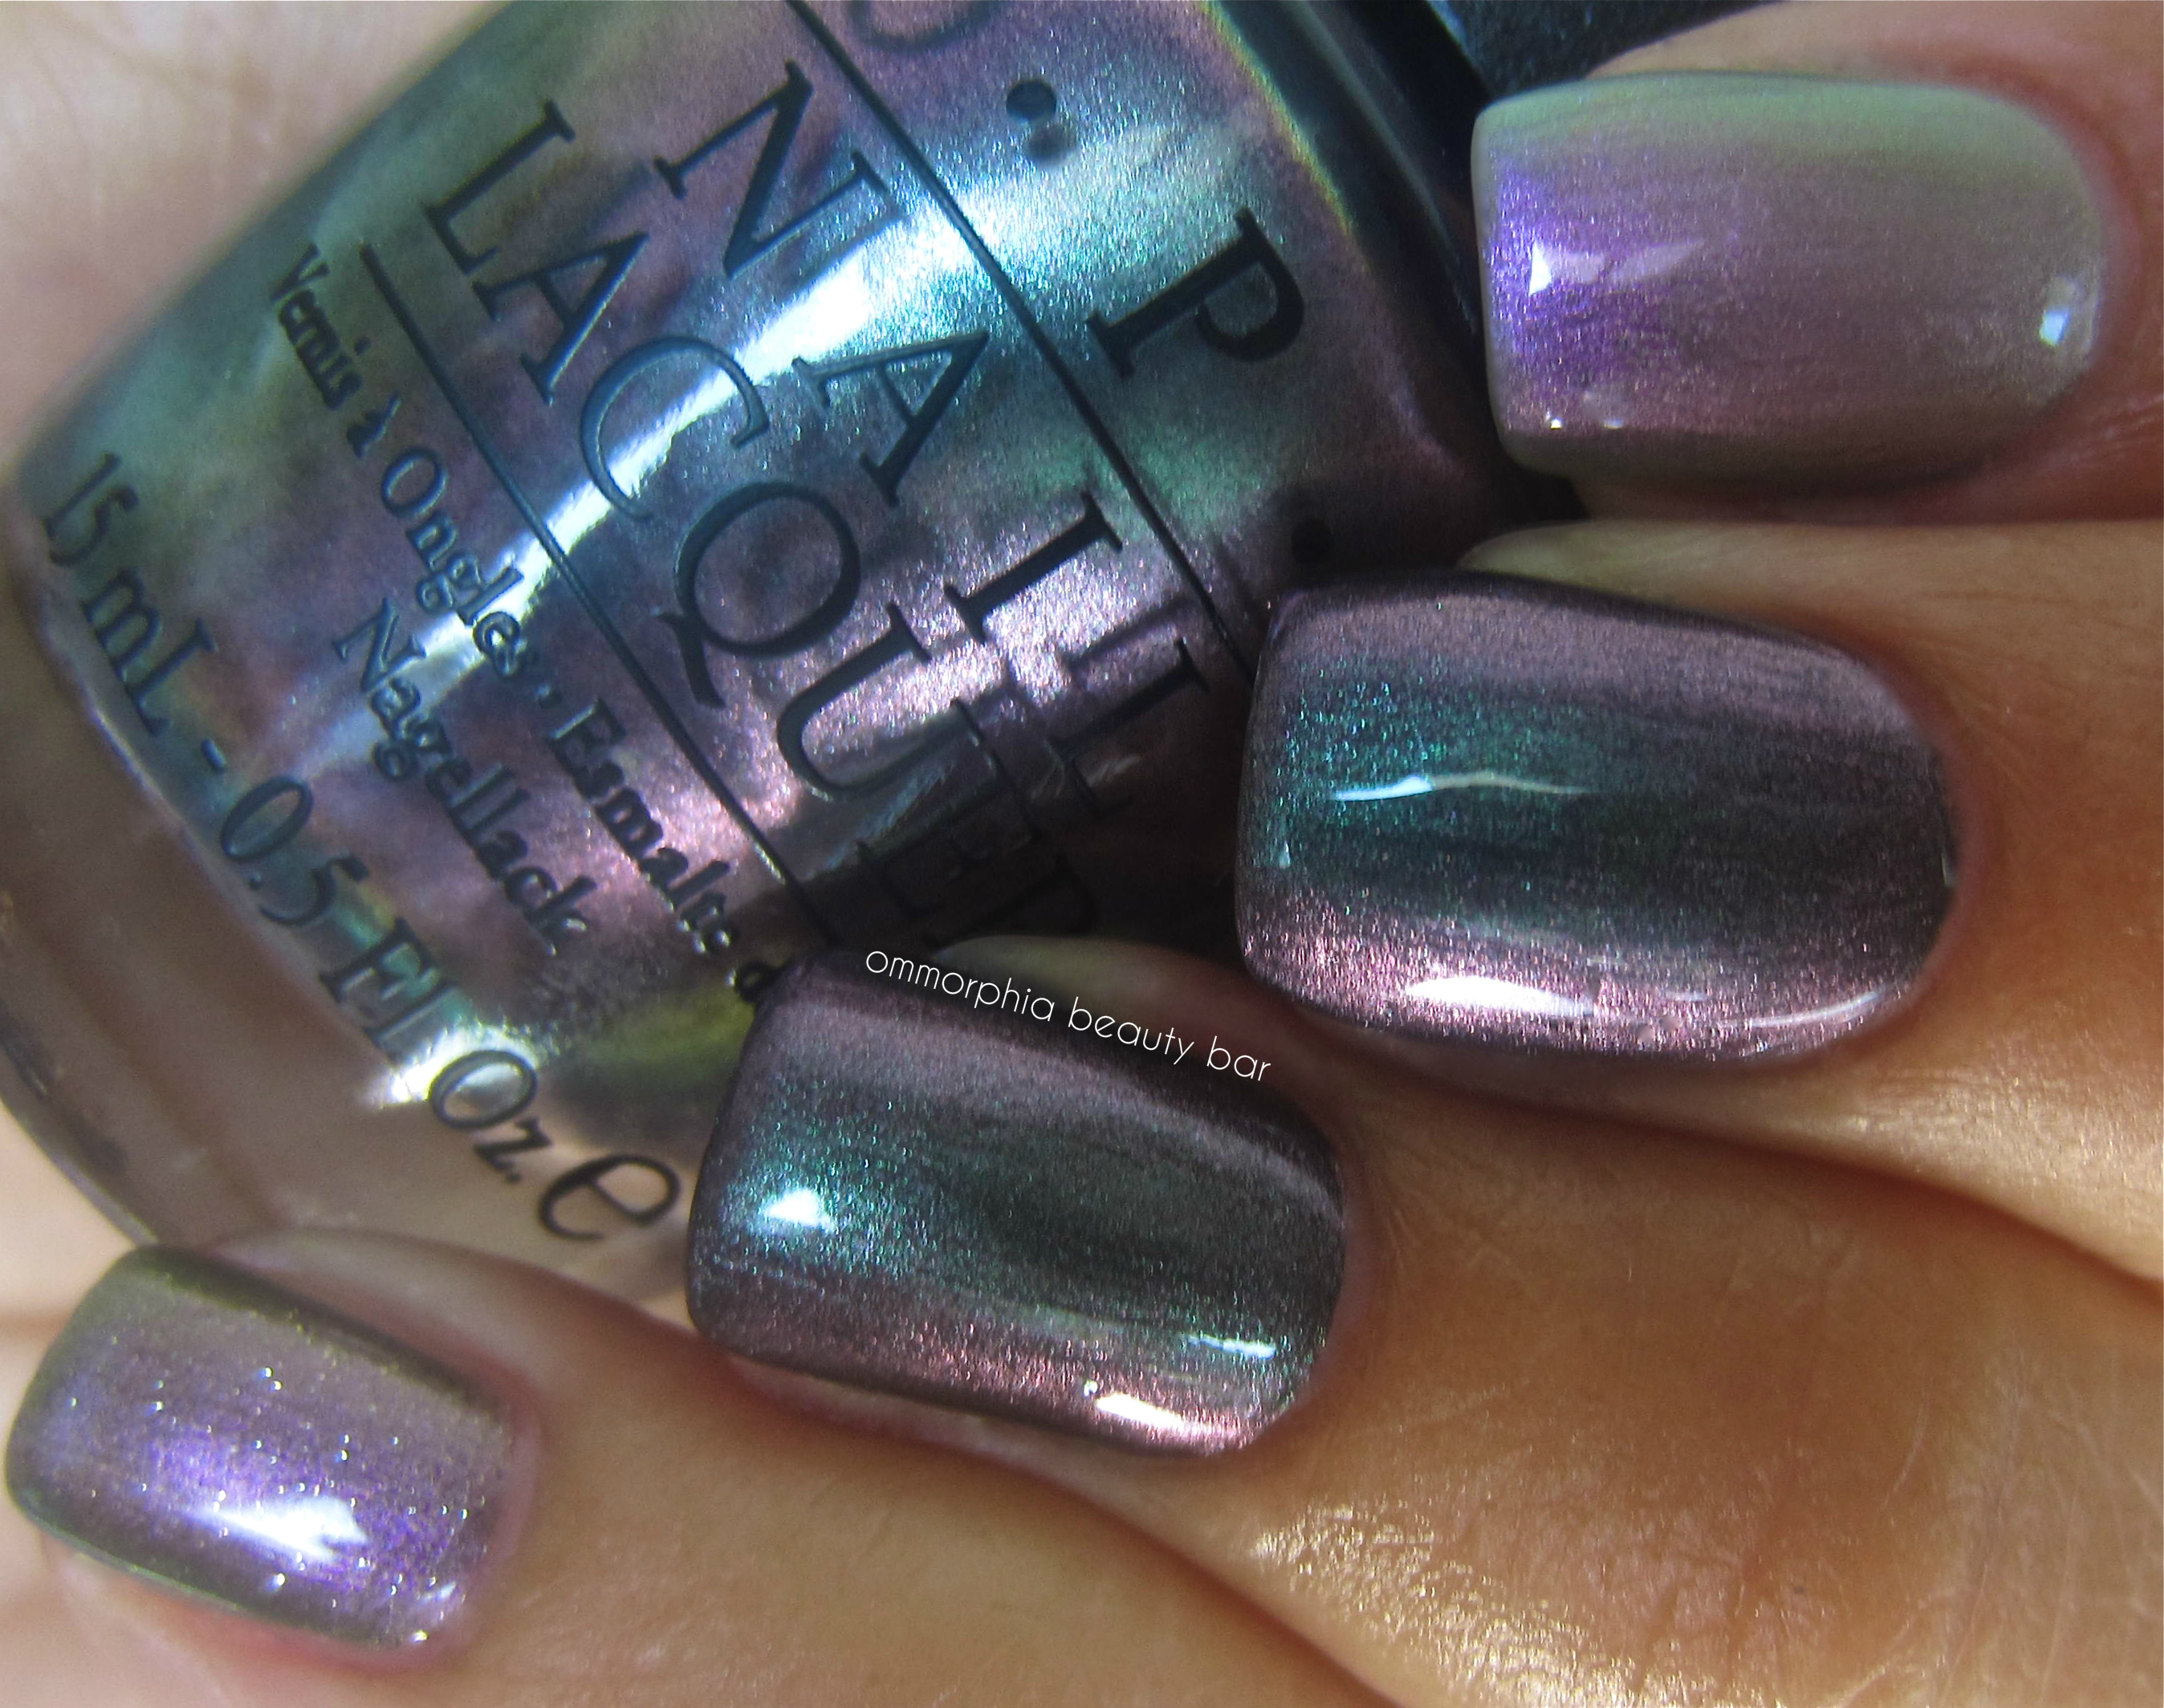 OPI – Peace & Love & OPI with comparisons | ommorphia beauty bar